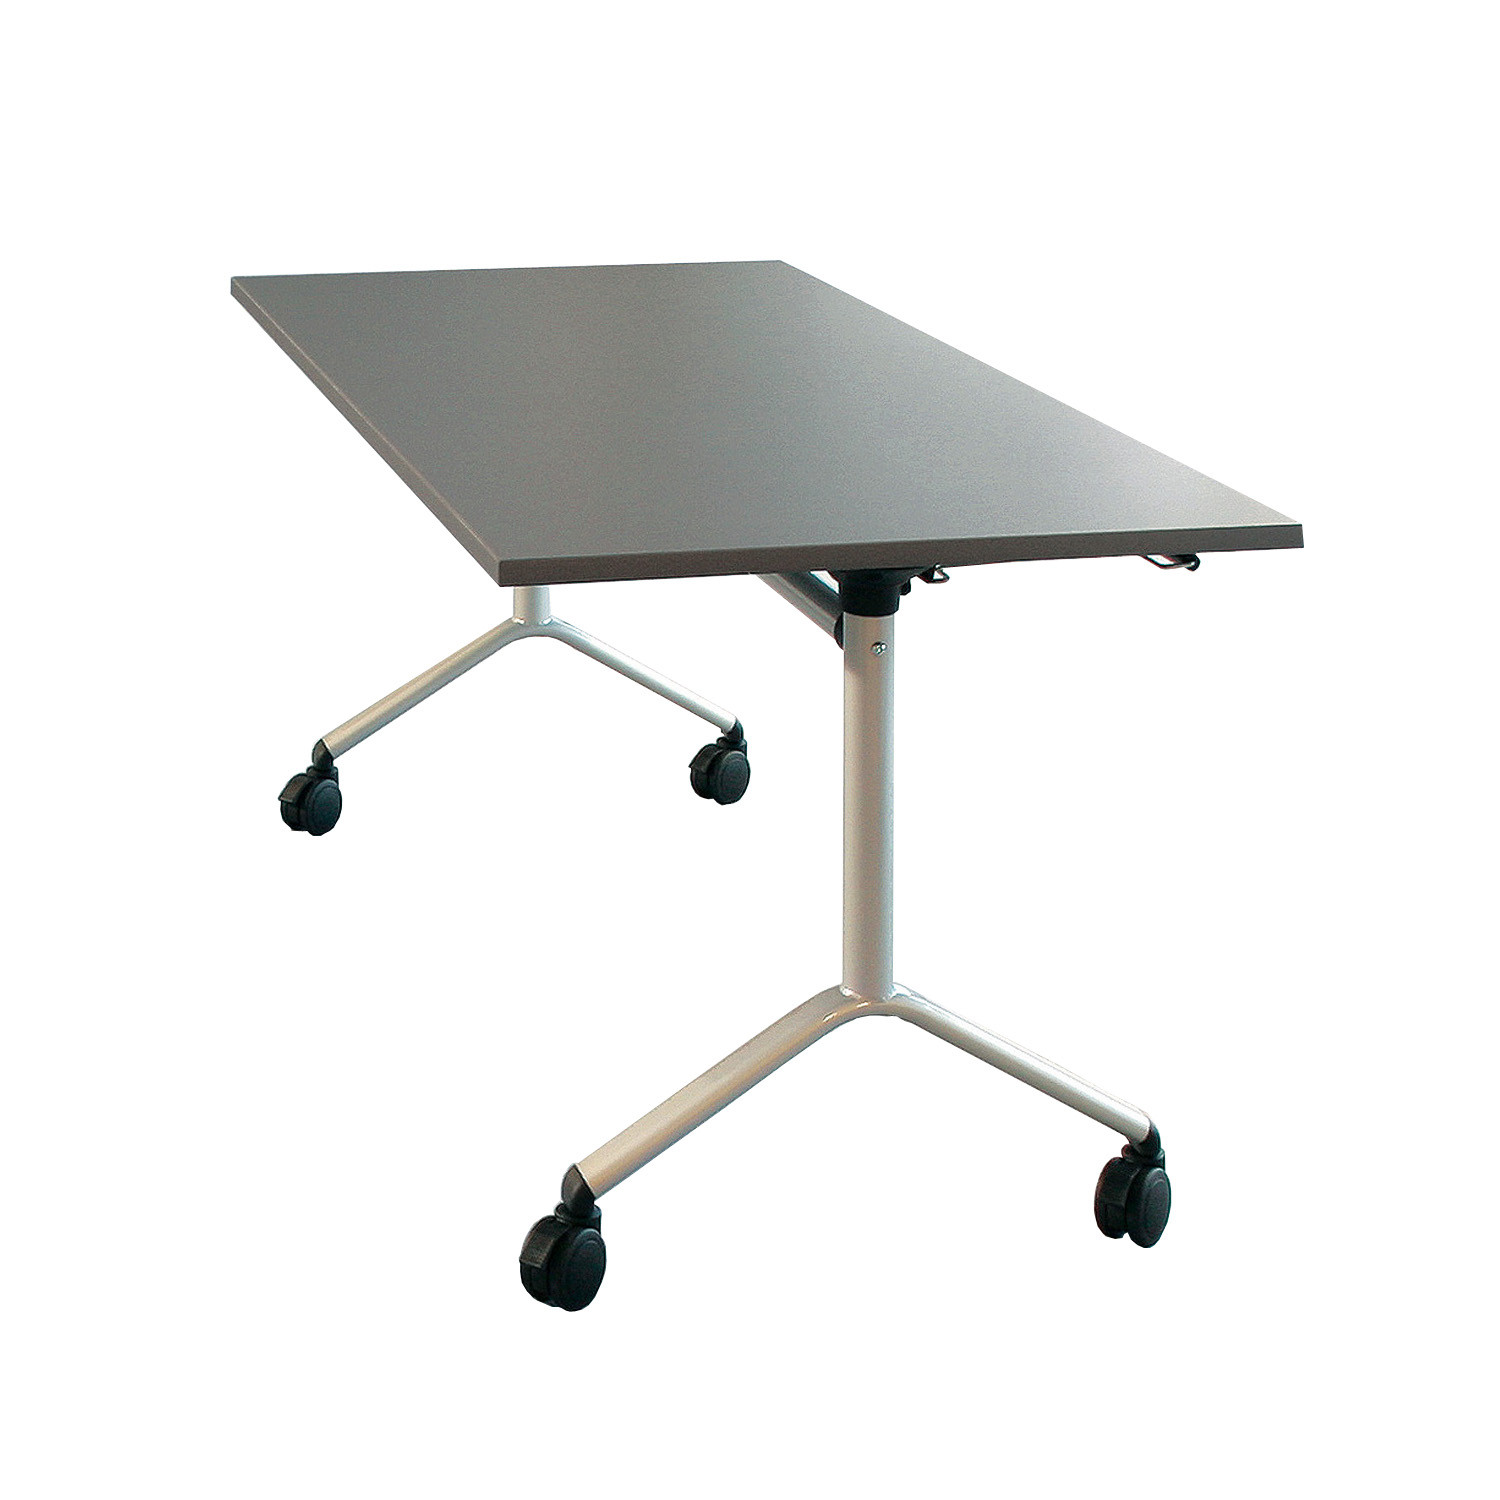 Pontis Height Adjustable Meeting Tables